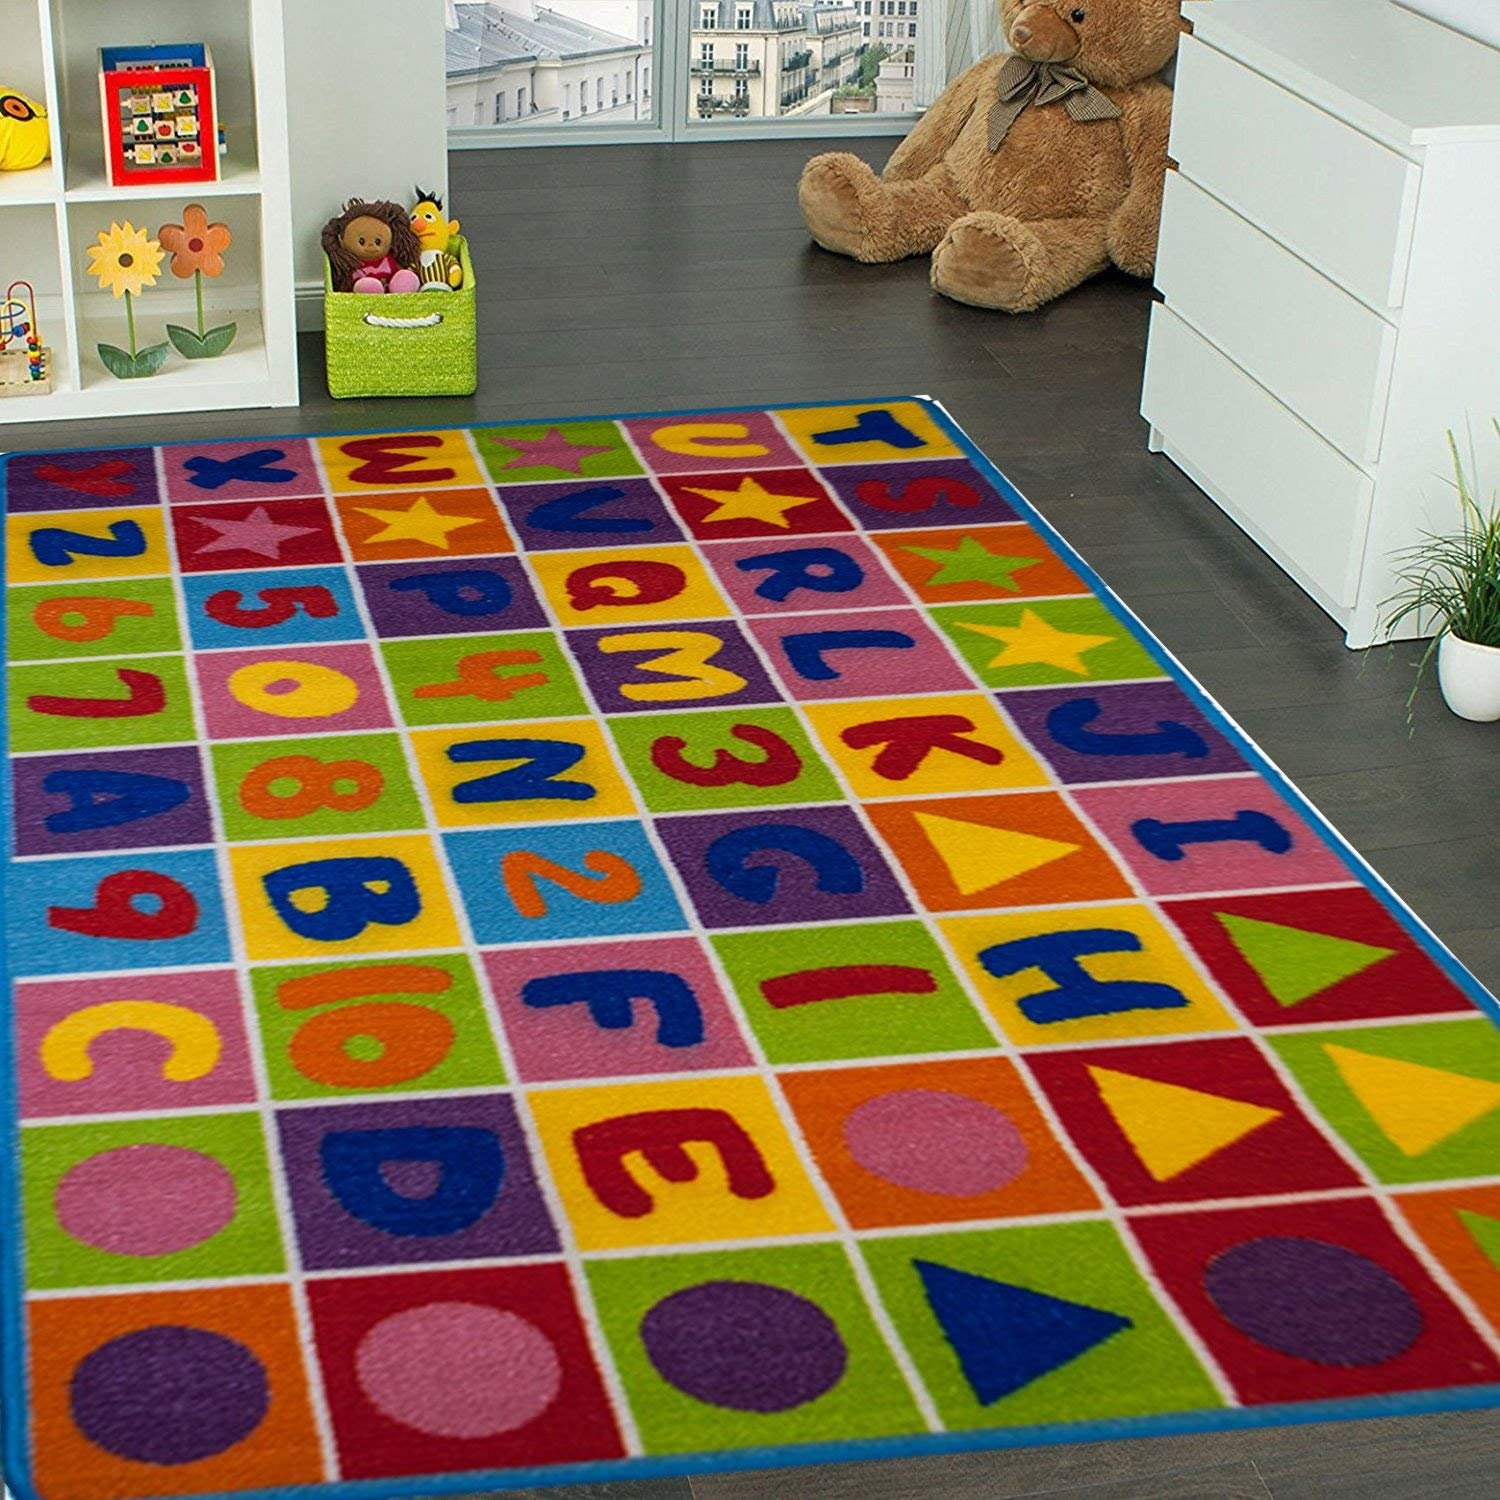 Mybecca Kids Rug Numbers and Letters 3' X 5' Children Area Rug for Playroom & Nursery - Non Skid Gel Backing (39'' x 56'') by Mybecca